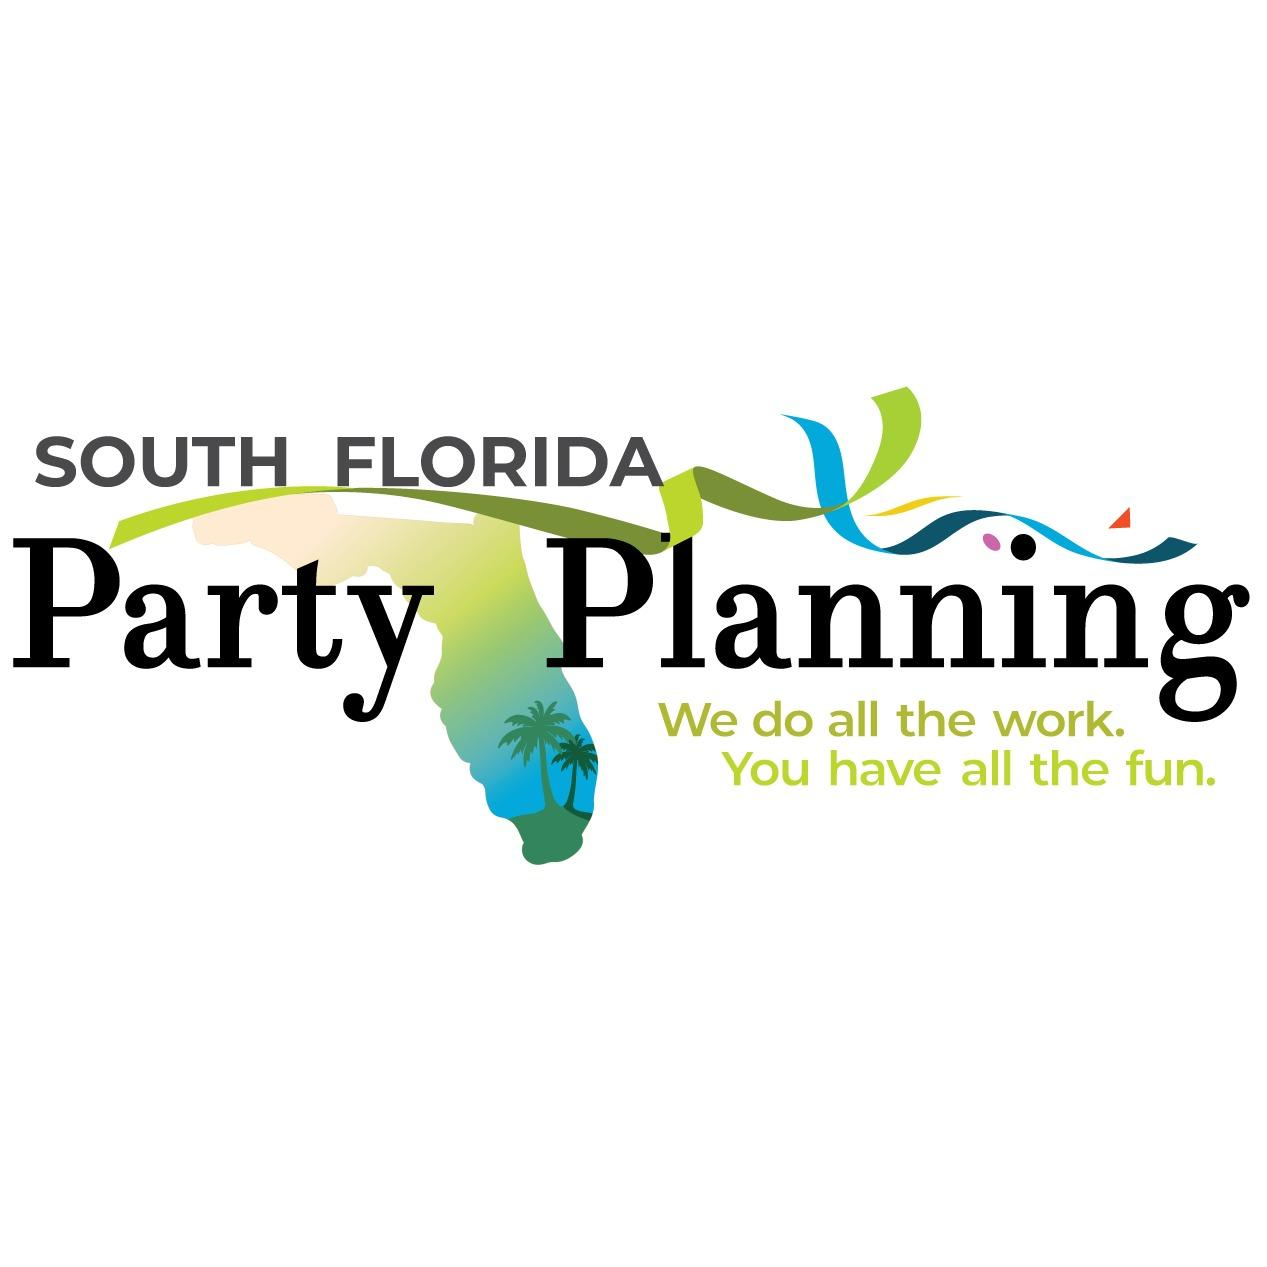 South Florida Party Planning